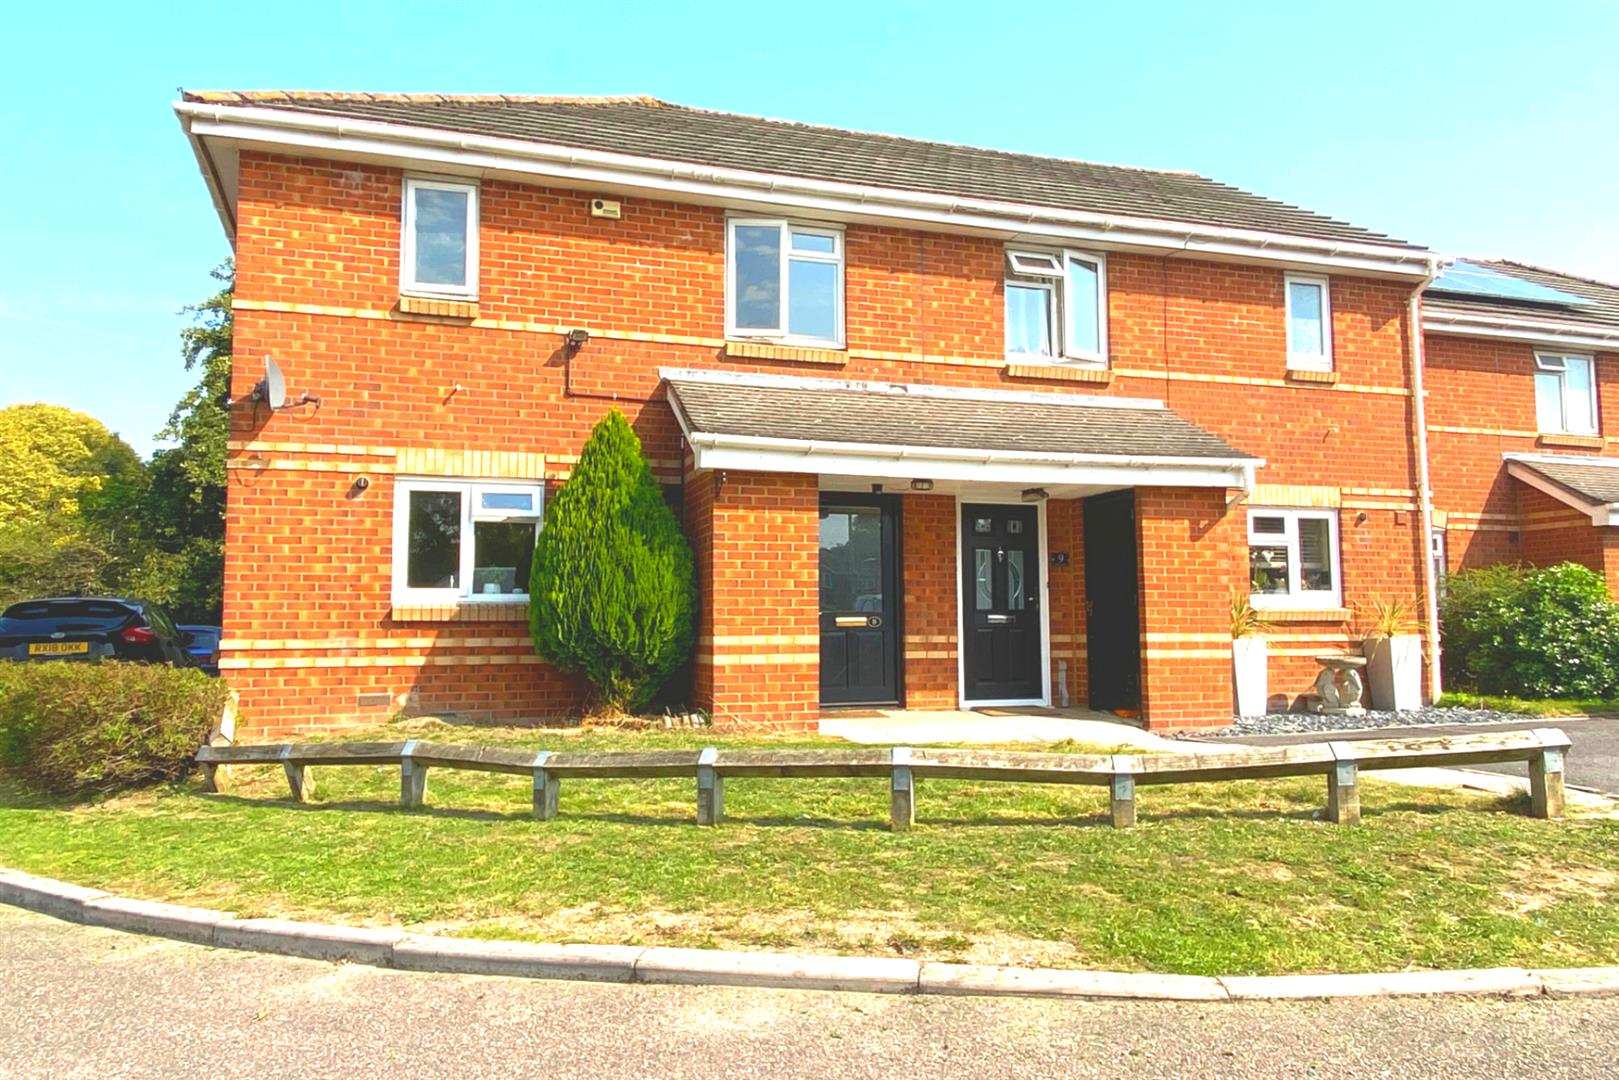 3 bed end of terrace for sale in Winnersh, RG41